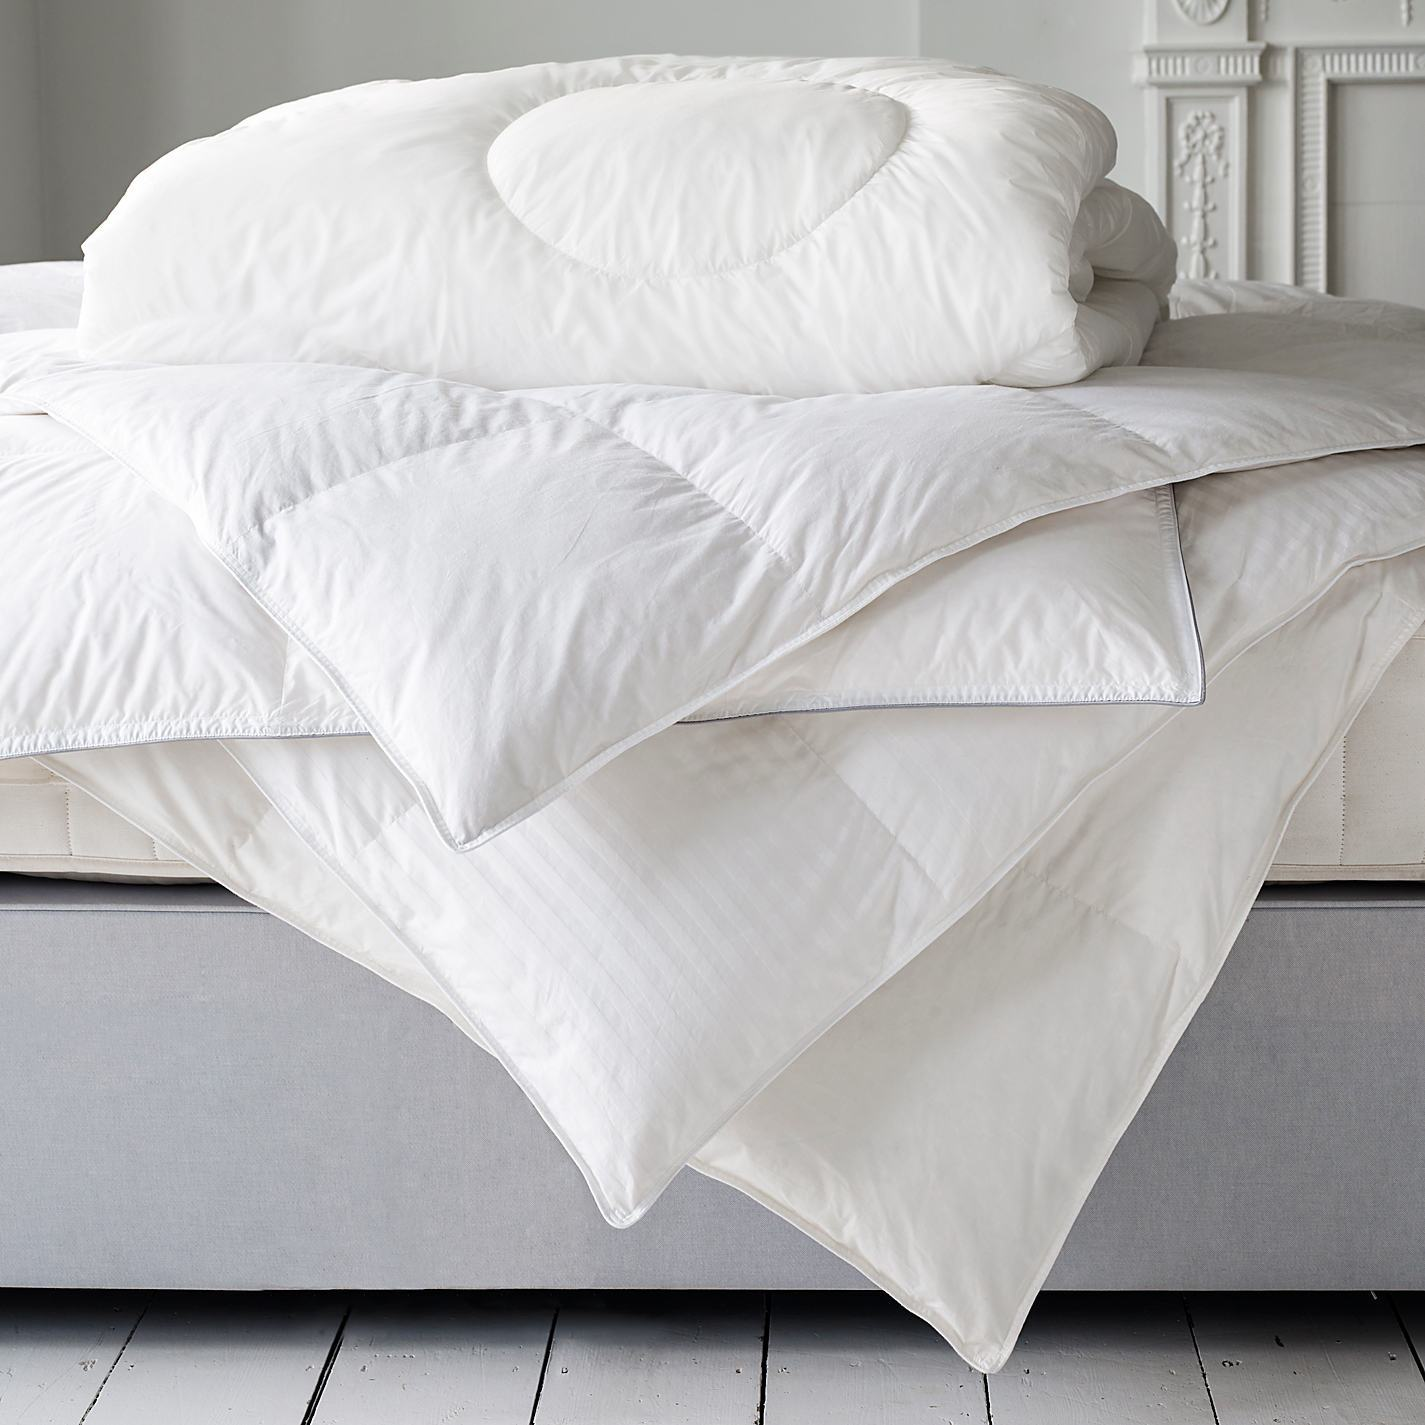 thread introduction power cheap pin and lightweight affordable fluffy pacific to down coast an comfort s comfortable well basic it count priced fill our the provide is comforter designed classic comforters of